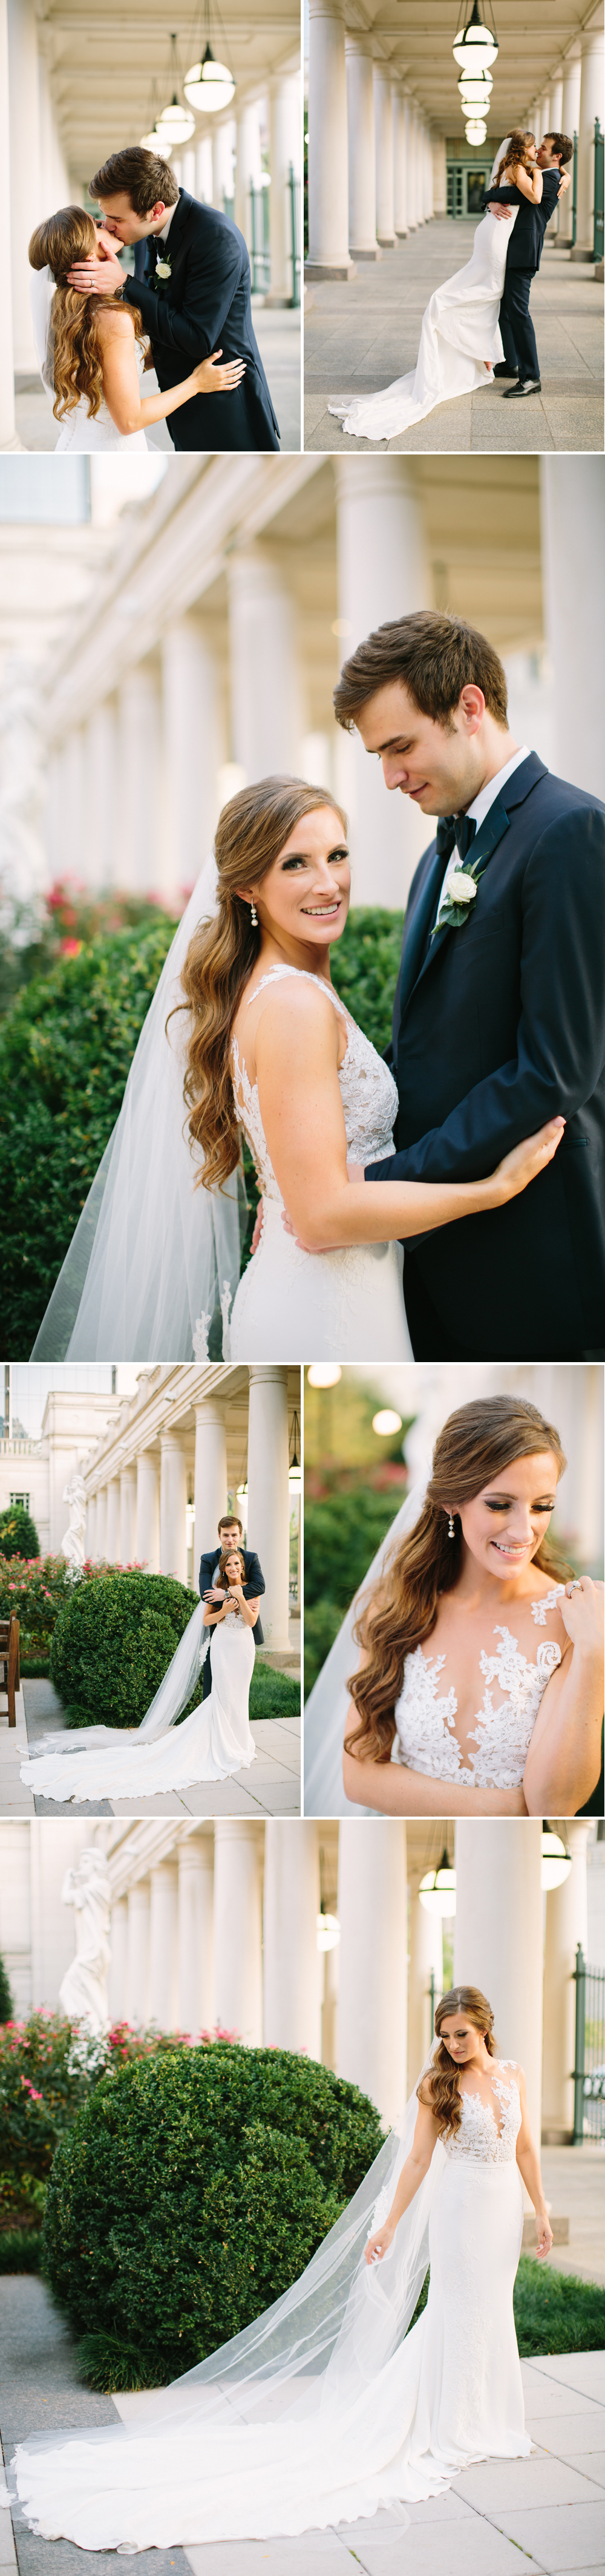 Nashville_symphony_wedding_photographer_Rachel_Moore_5.jpg